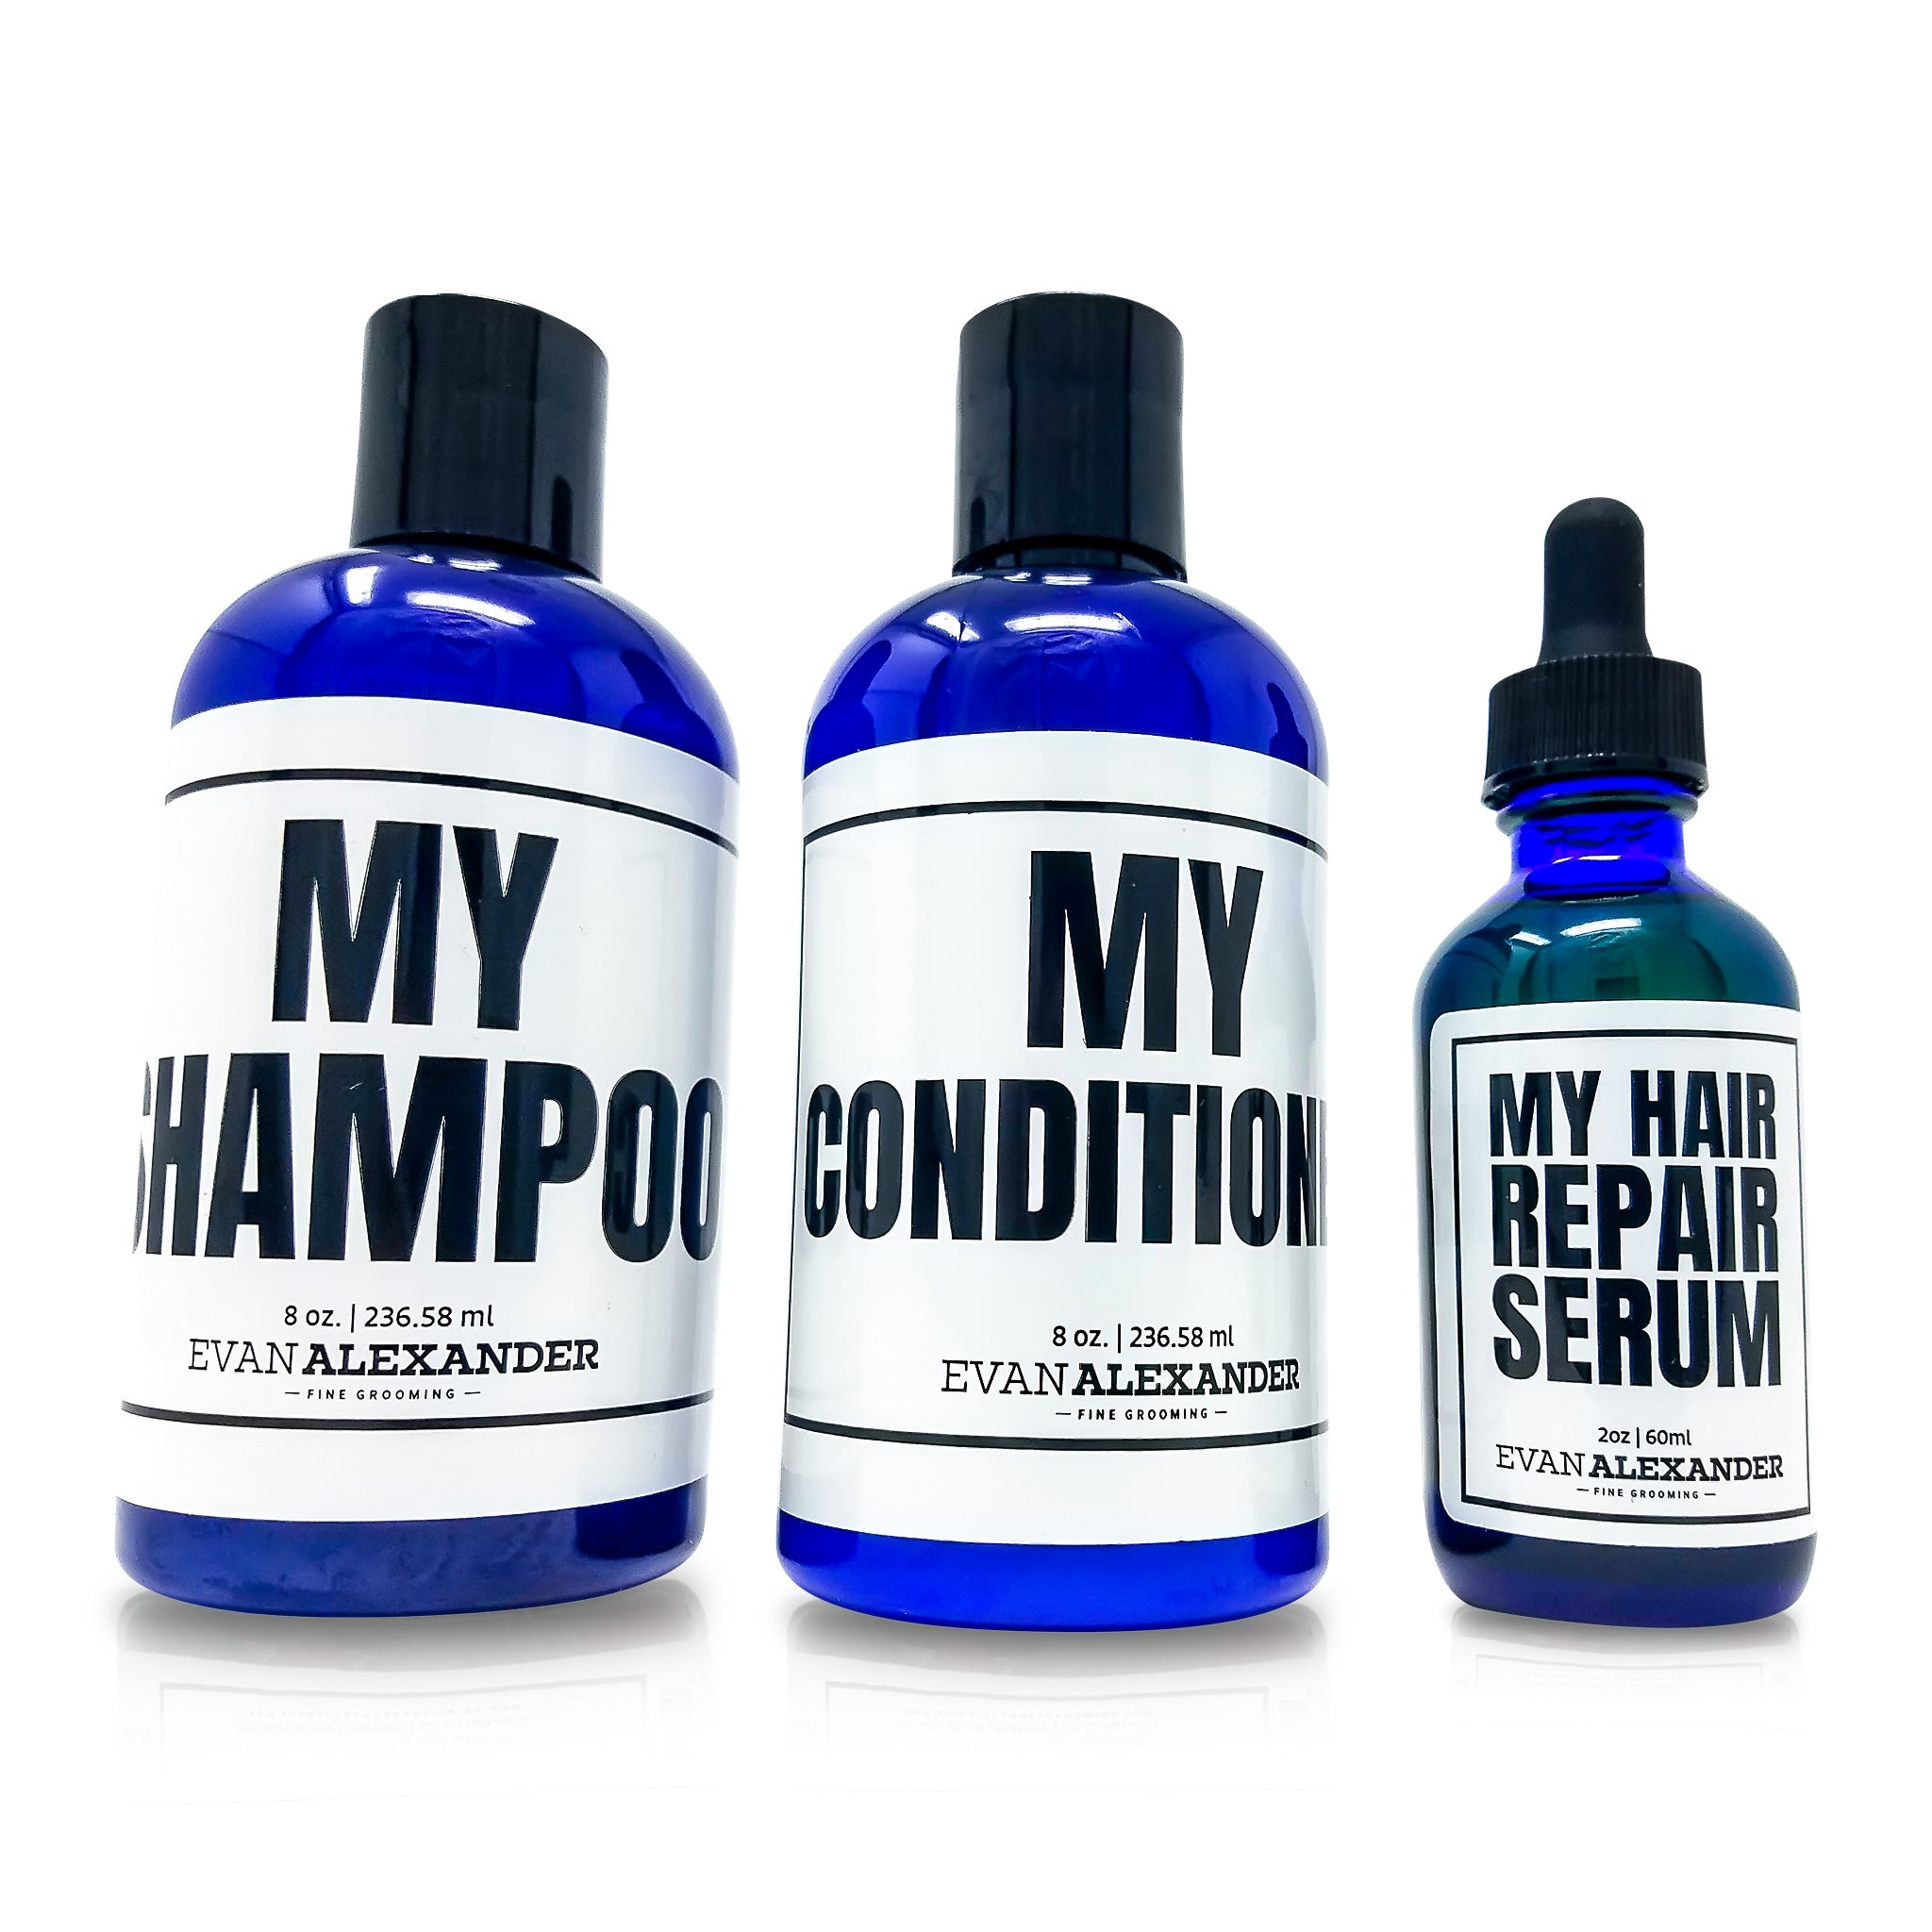 MY Hair Repair System